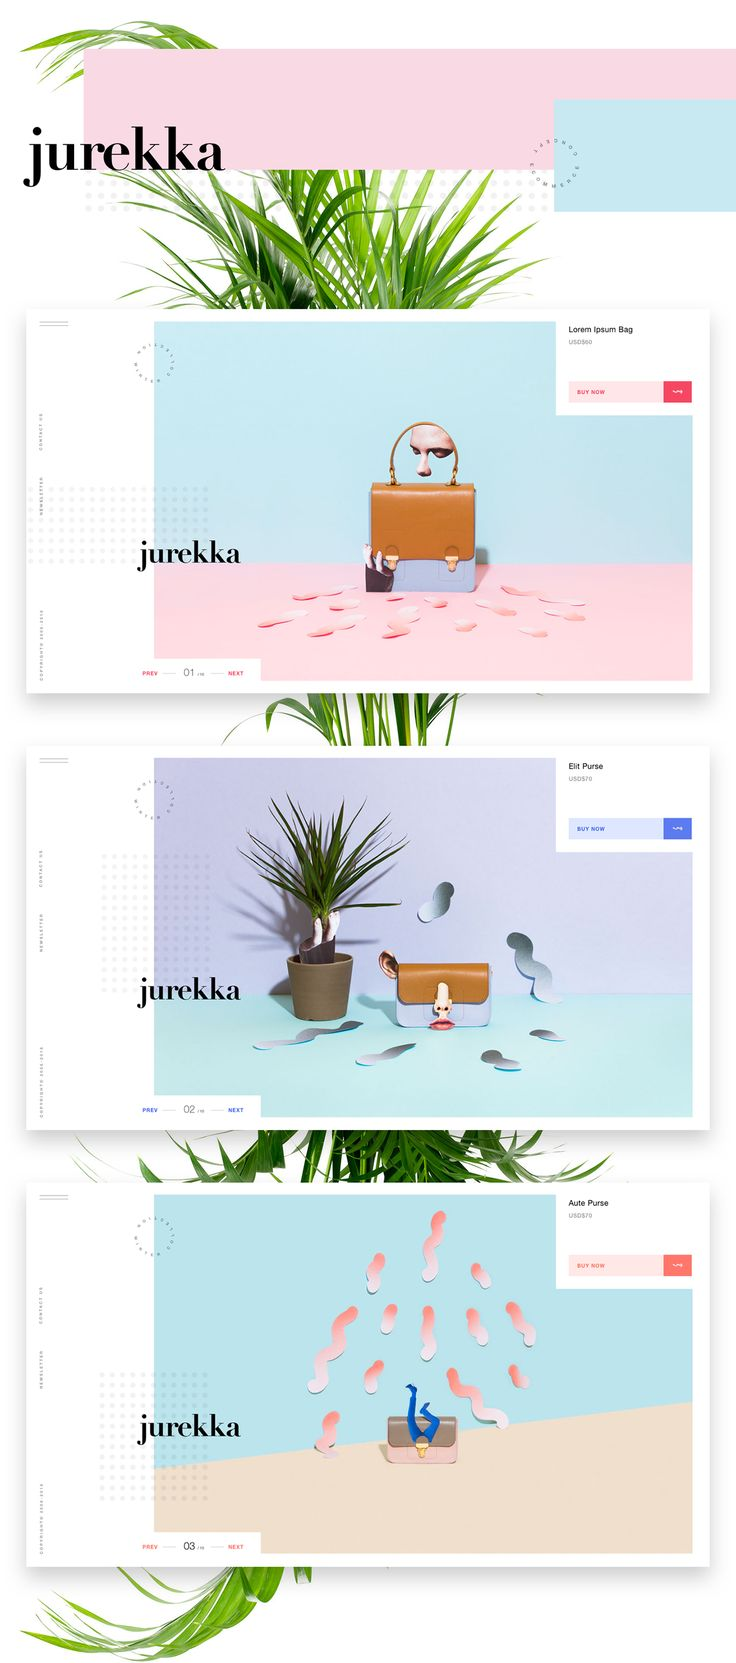 Jurekka Ecommerce (concept) on Behance